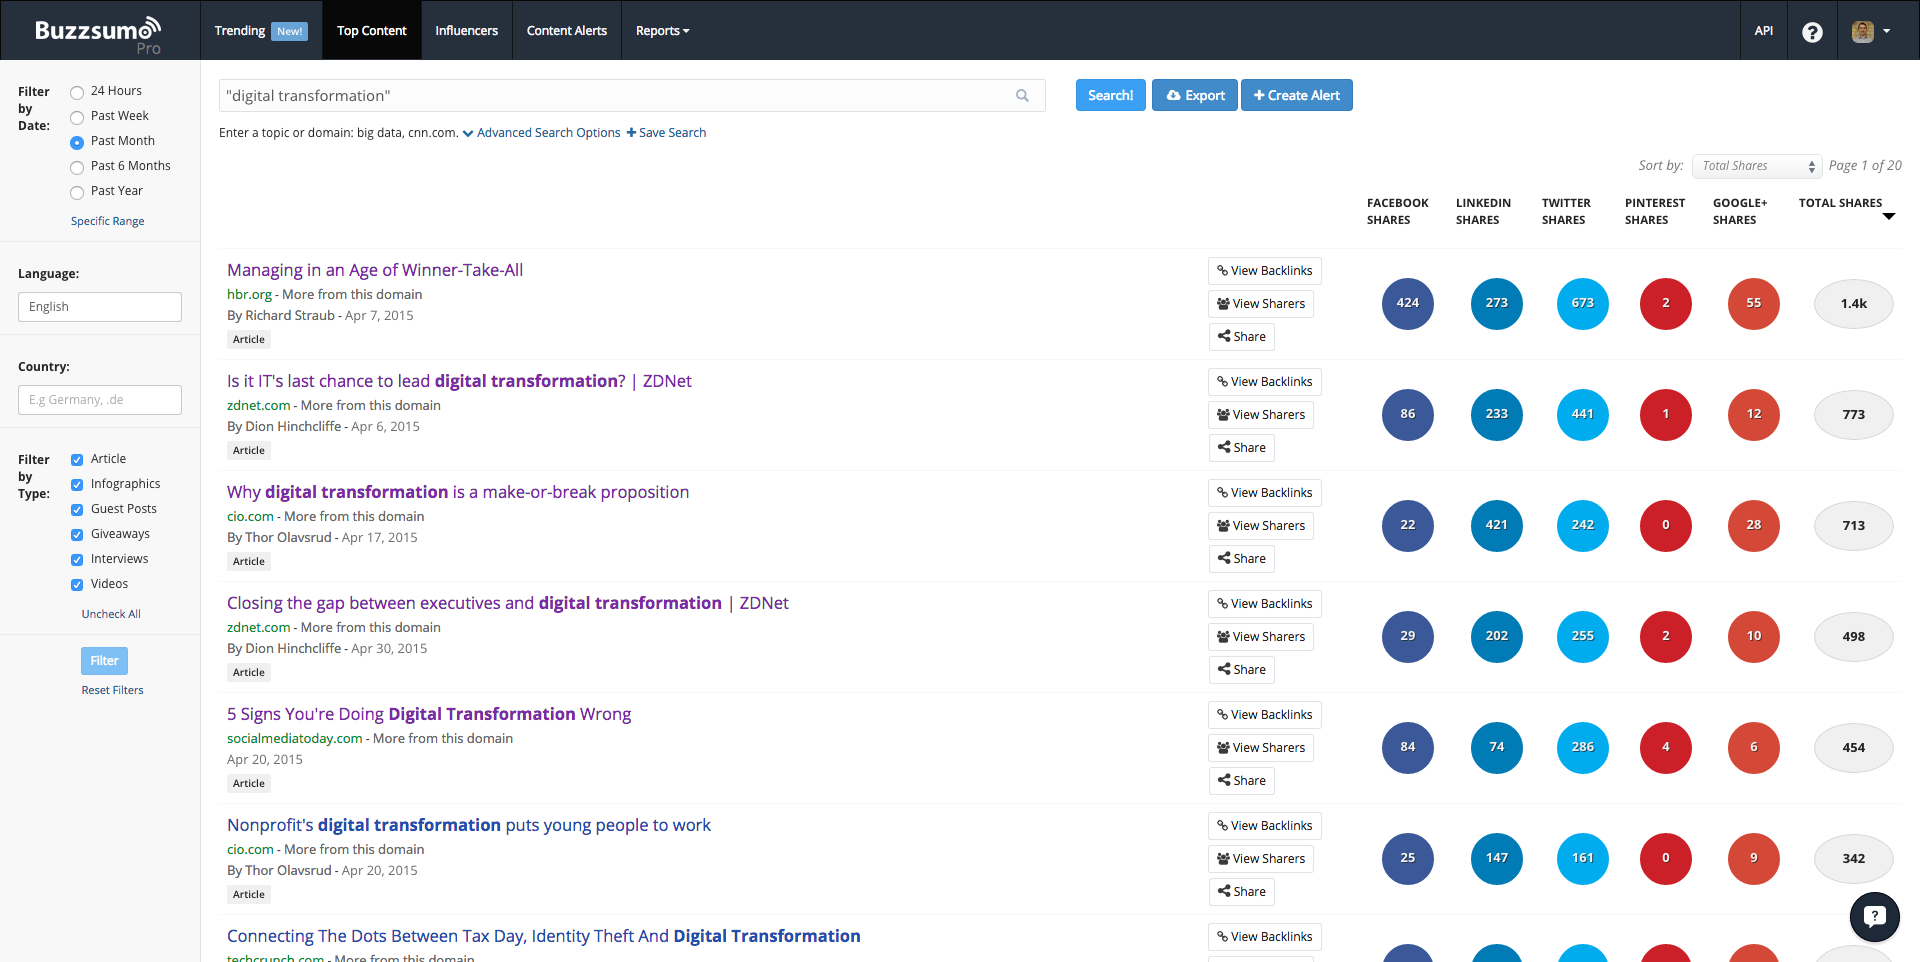 BuzzSumo Search Digital Transformation